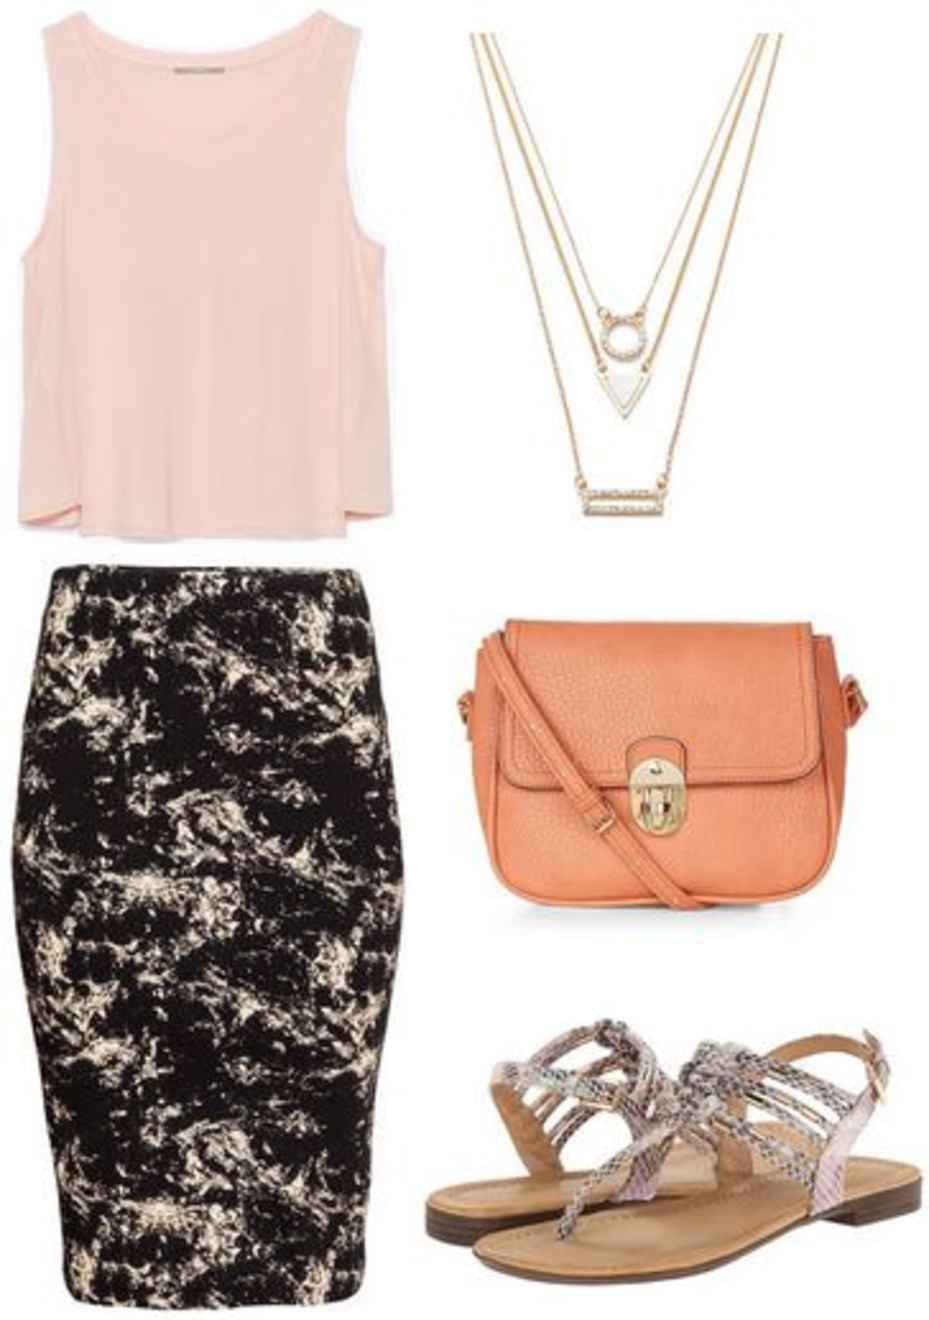 909448e99 Fabulous Find of the Week: H&M Marble Print Skirt | Outfit ...